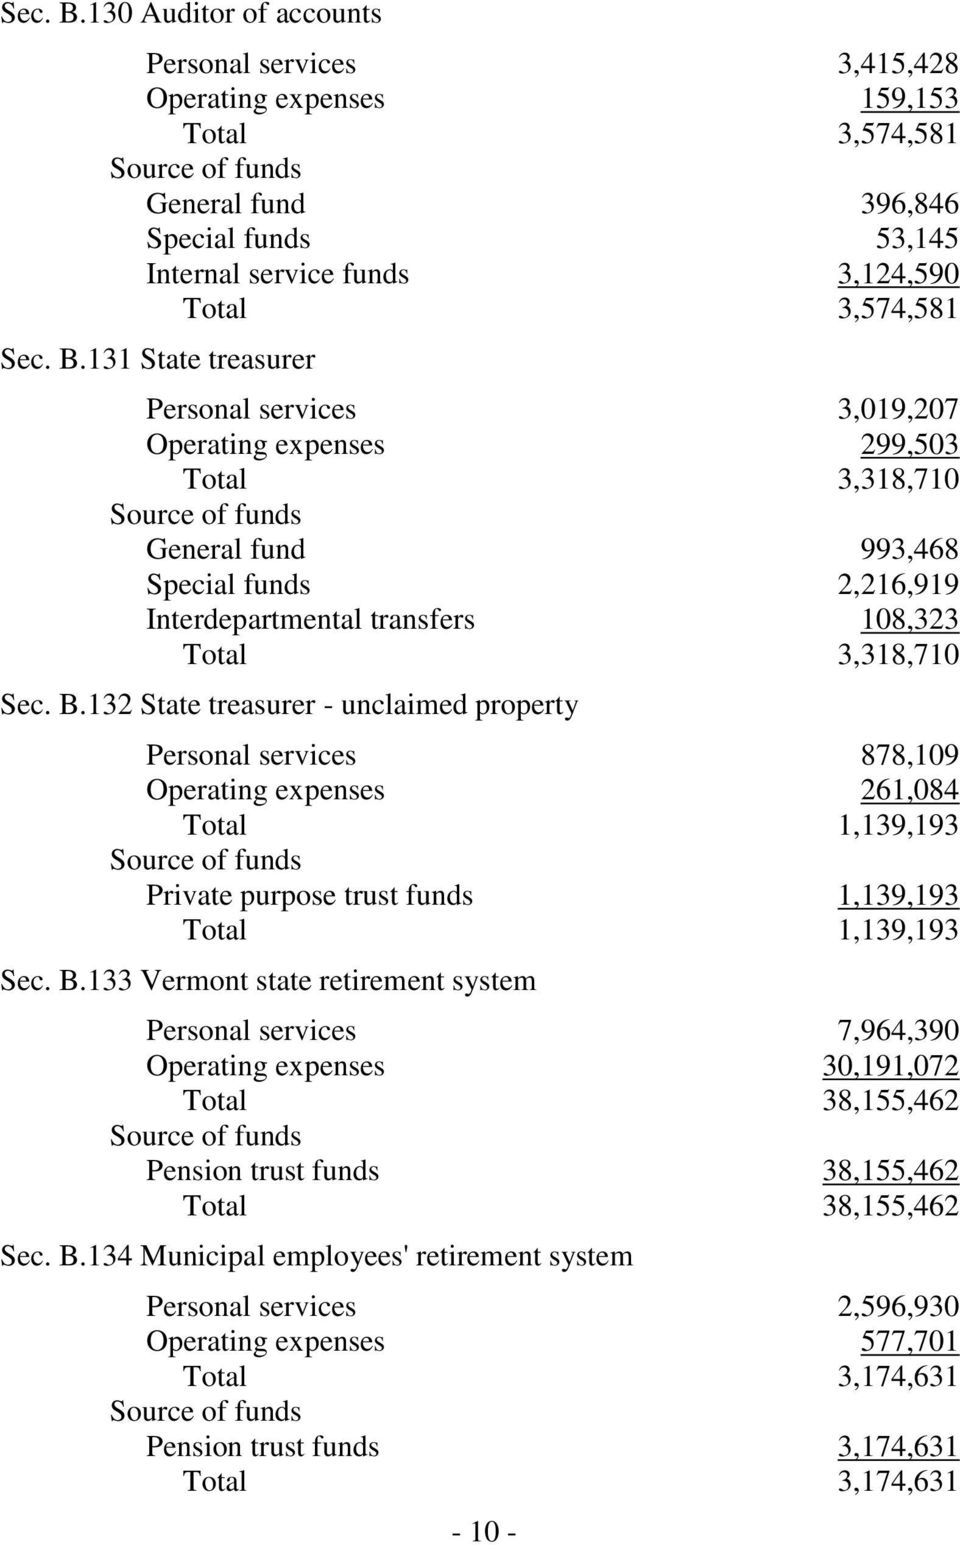 133 Vermont state retirement system Personal services 7,964,390 Operating expenses 30,191,072 Total 38,155,462 Pension trust funds 38,155,462 Total 38,155,462 Sec. B.